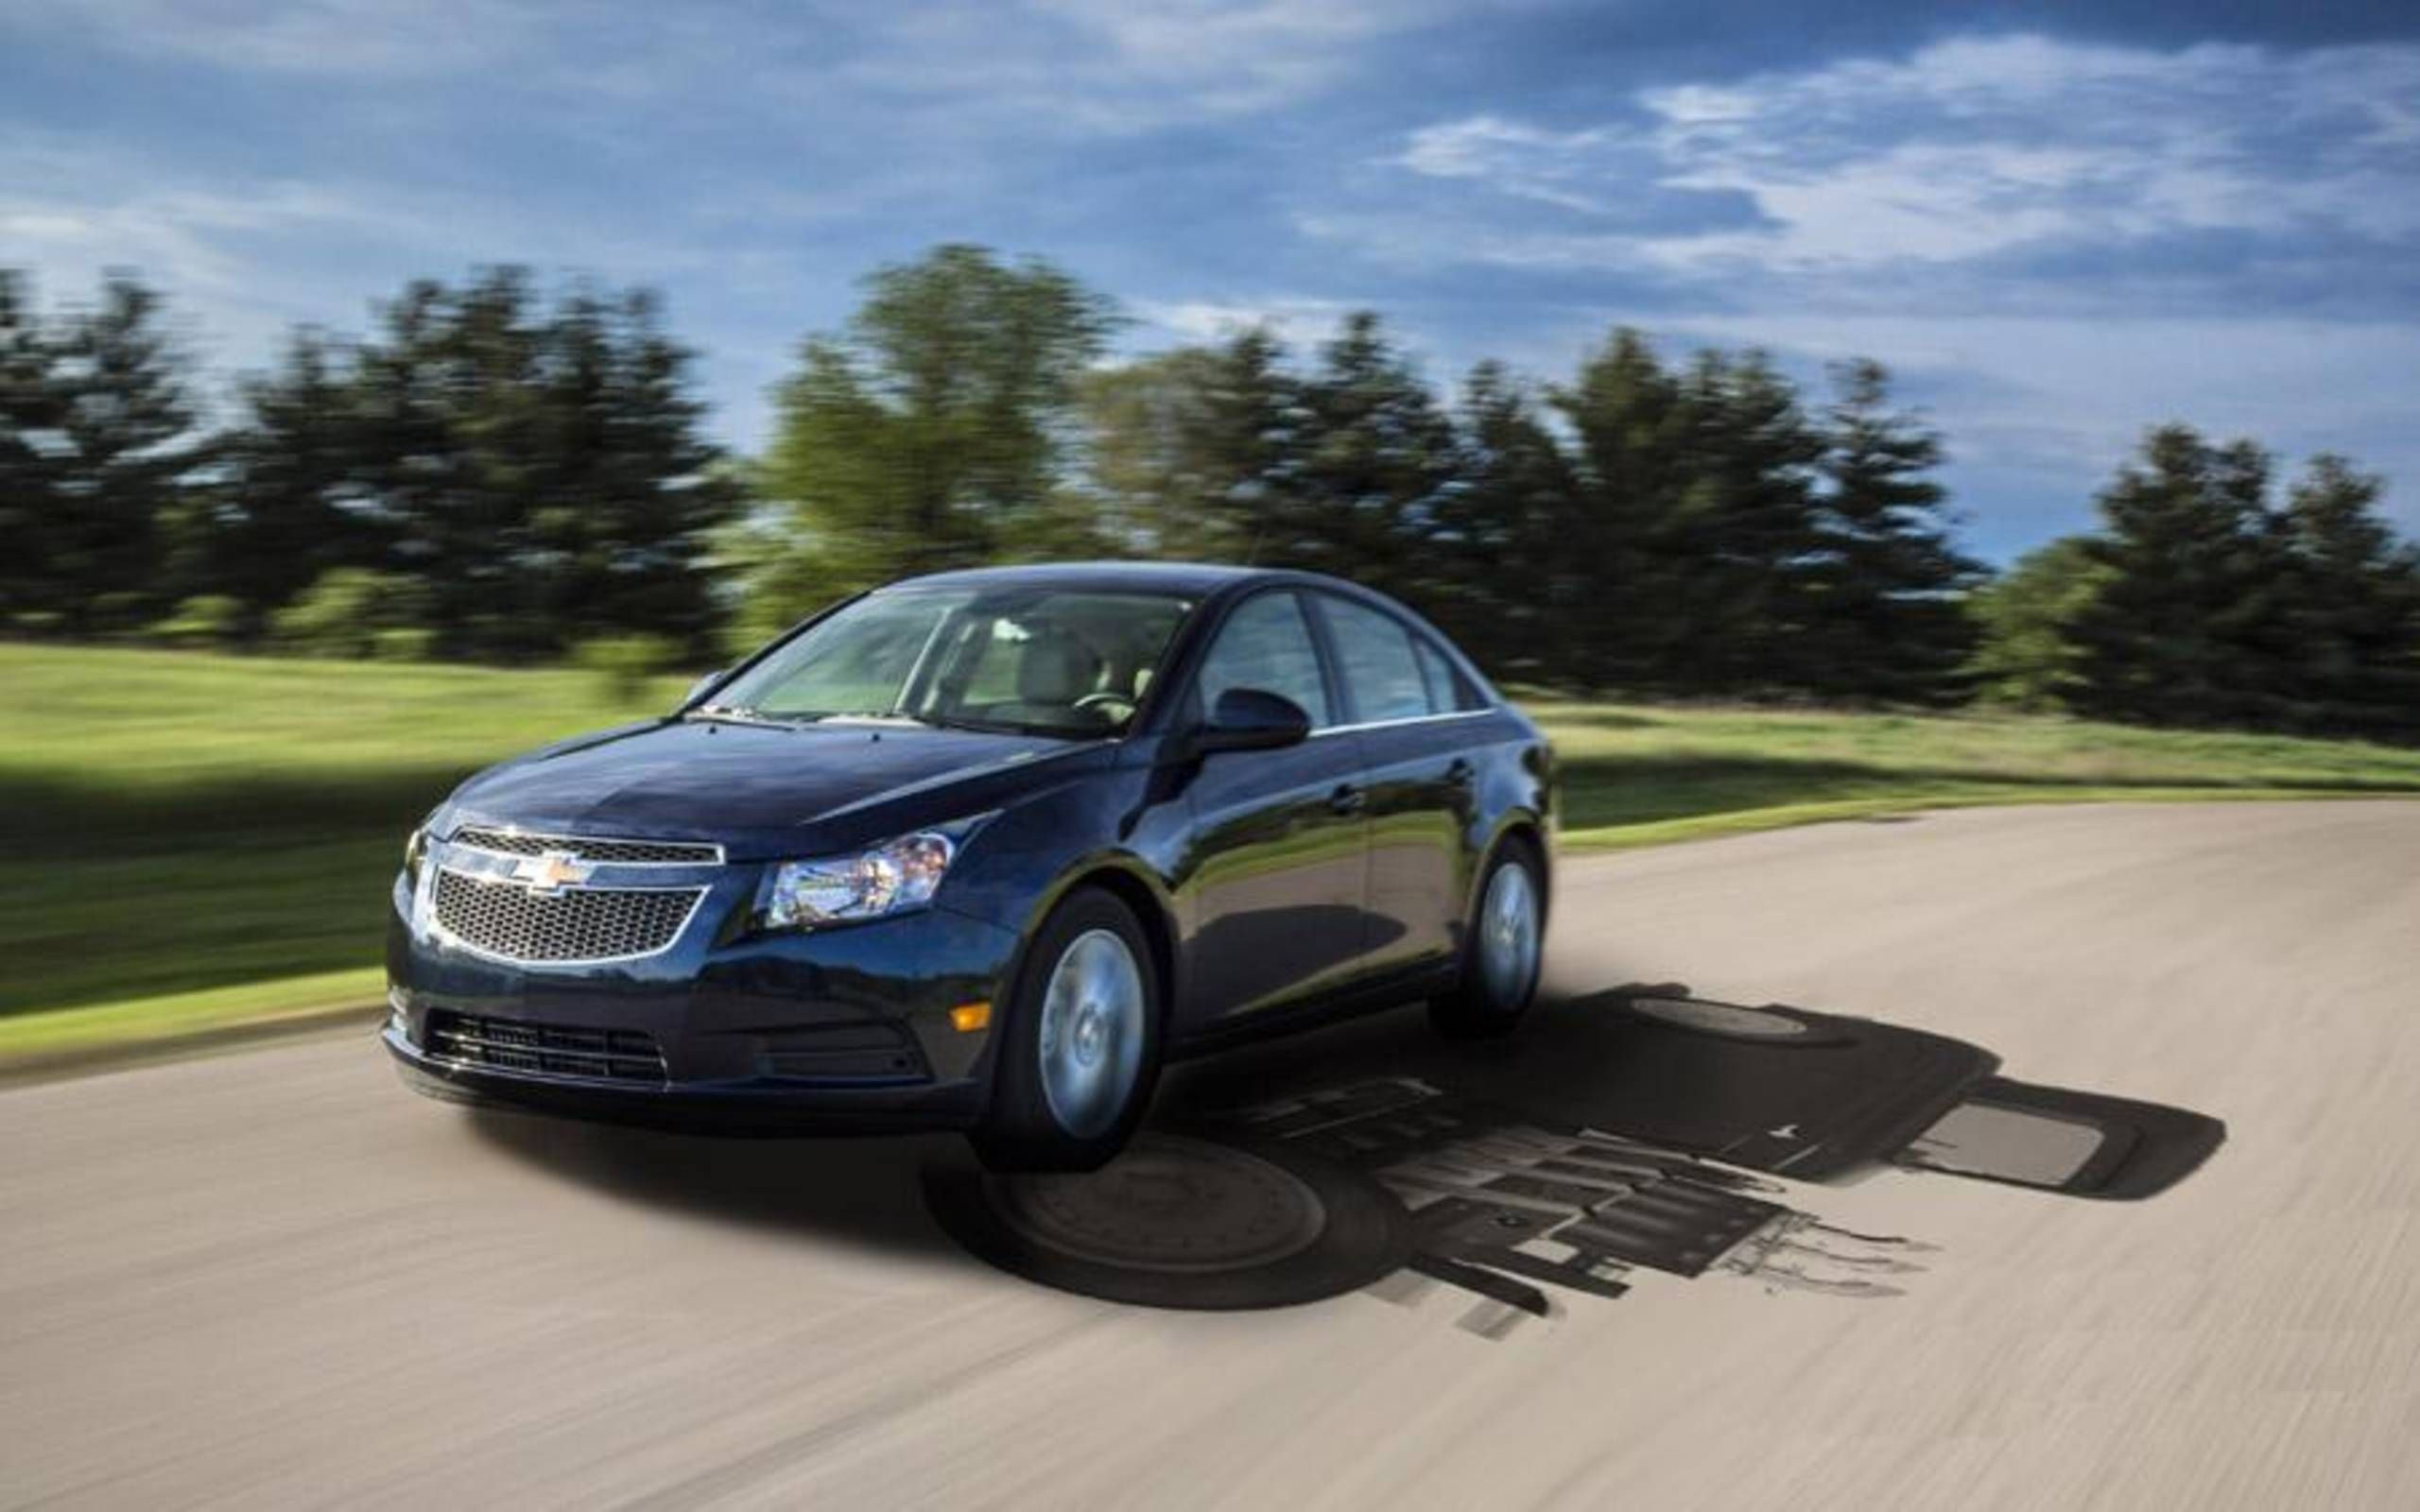 2014 chevrolet cruze diesel review notes 2014 chevrolet cruze diesel review notes